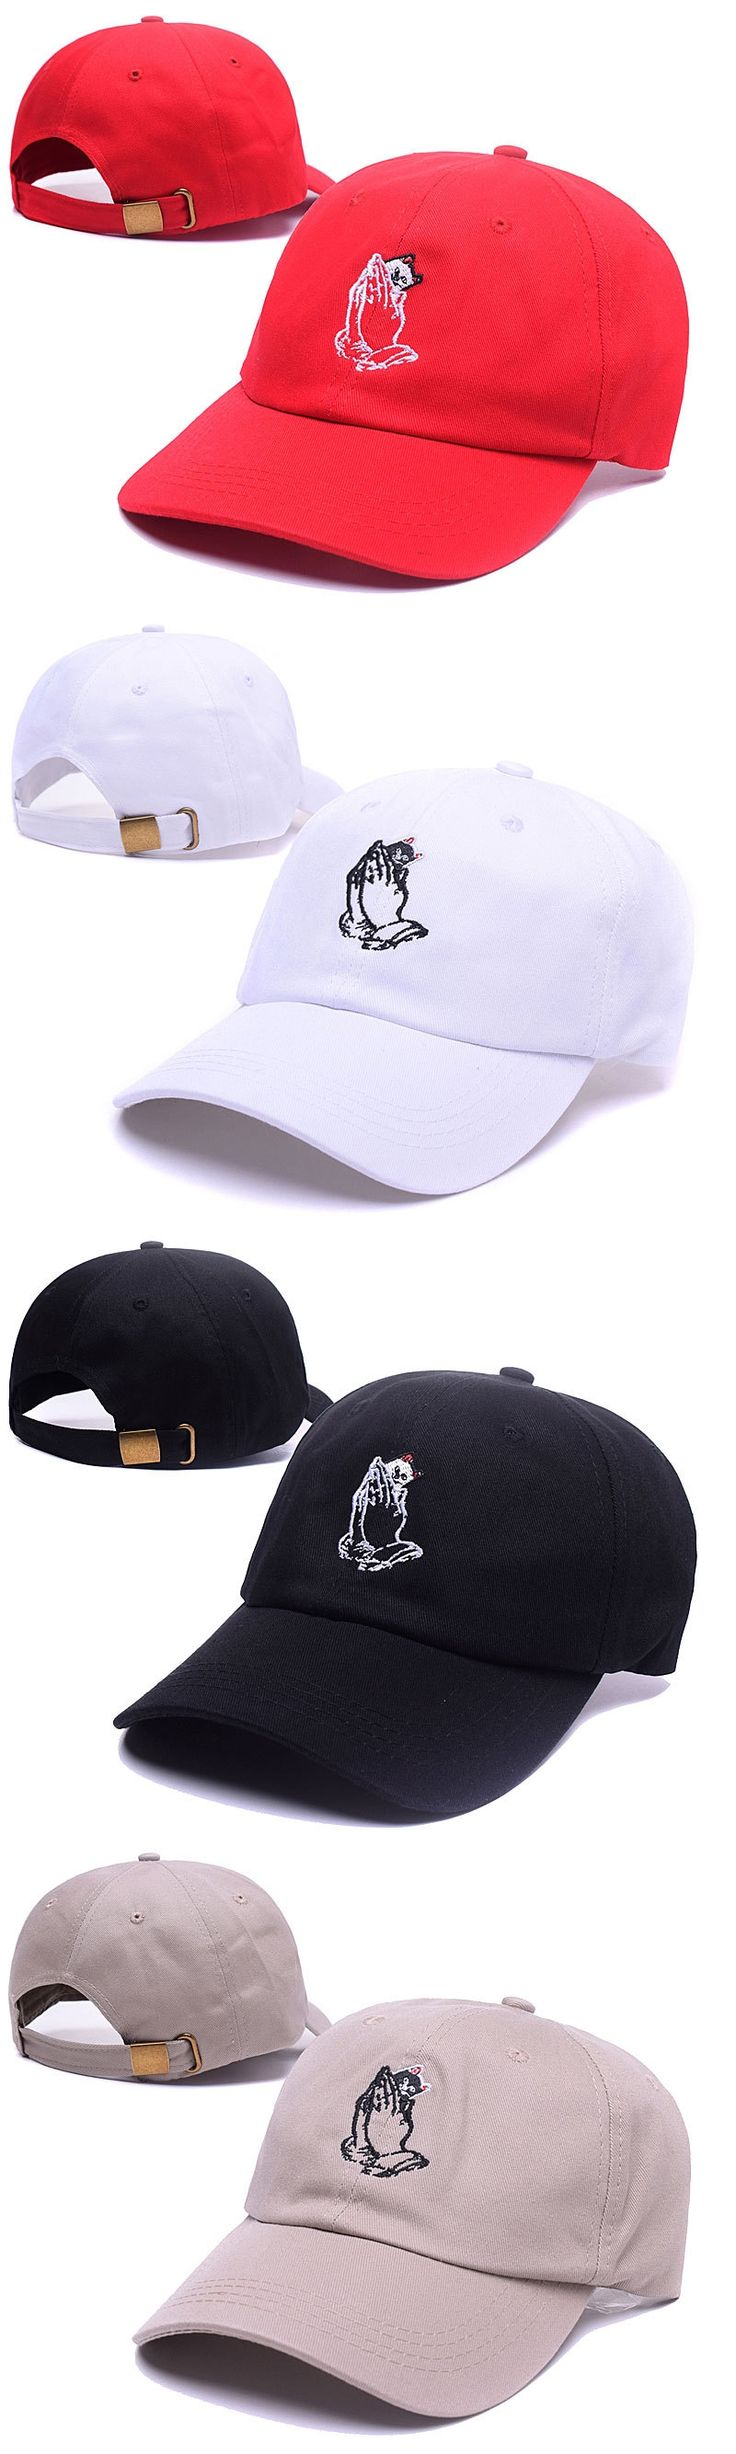 summer Dad Hat white polo caps Curved Brim hats 2017 girls golf sport baseball caps polo hats for women men brand style